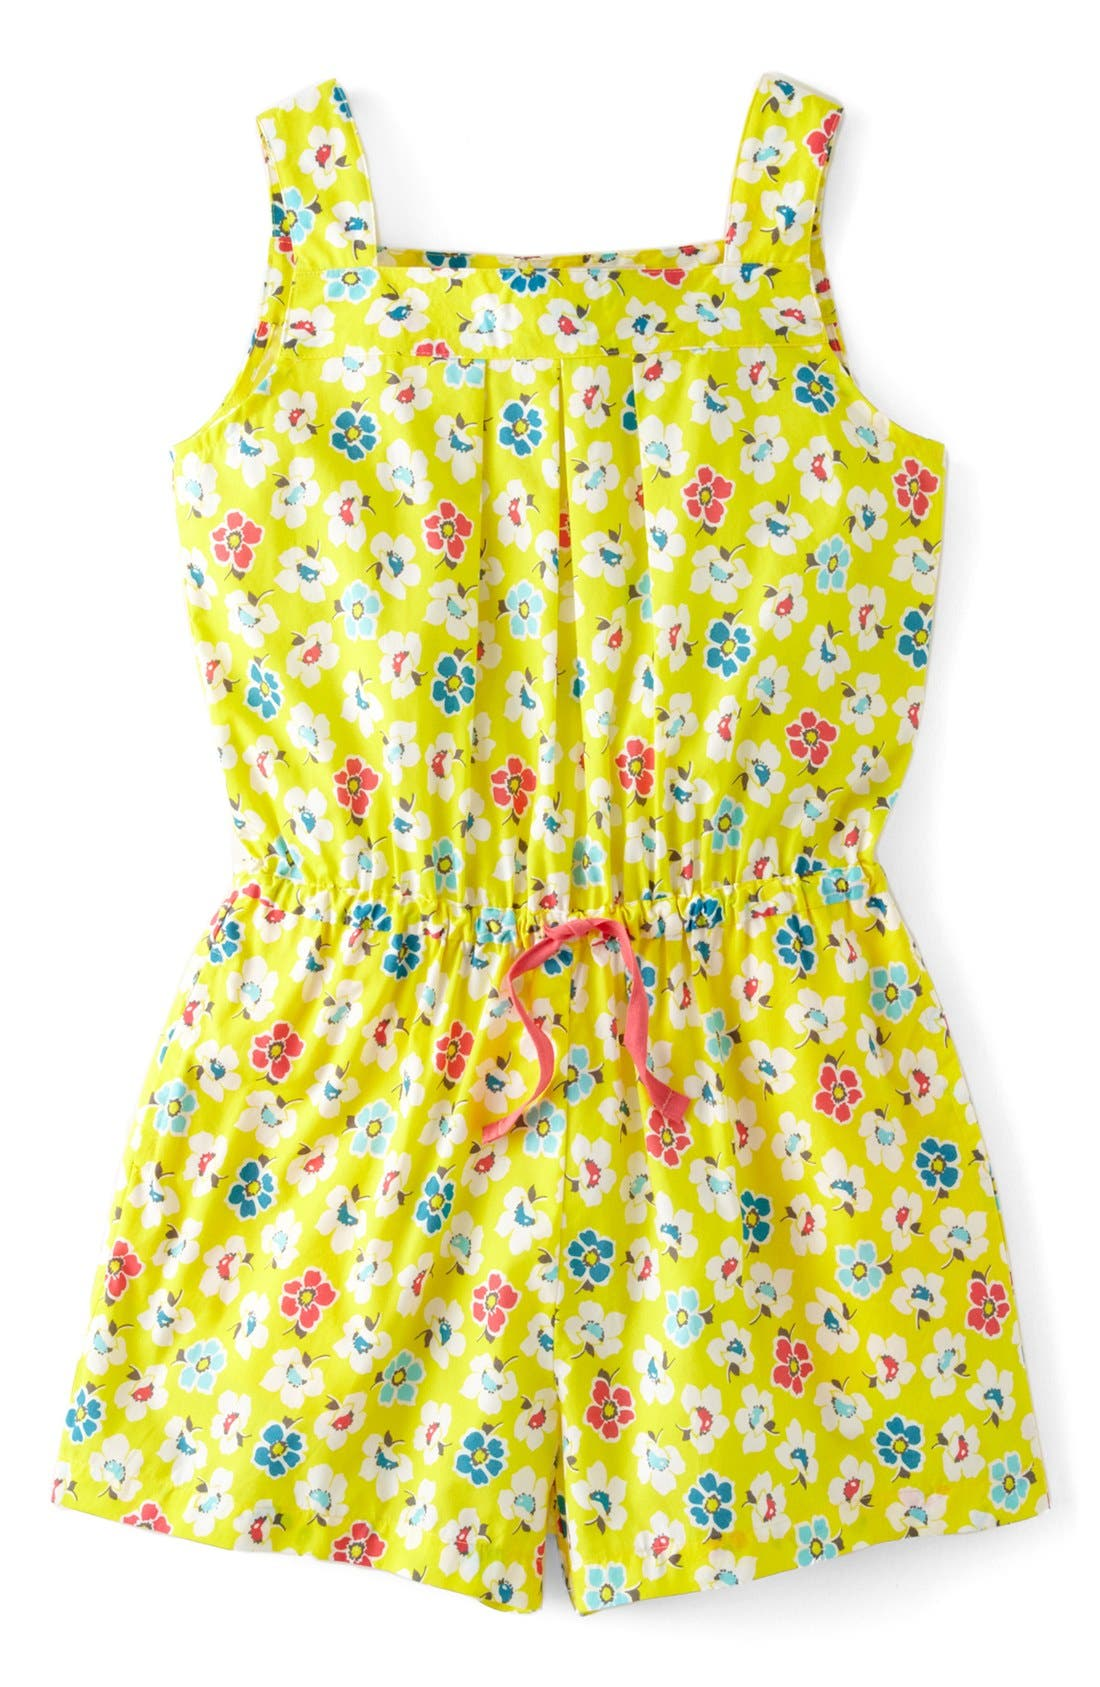 Alternate Image 1 Selected - Mini Boden 'Pretty' Romper (Little Girls & Big Girls)